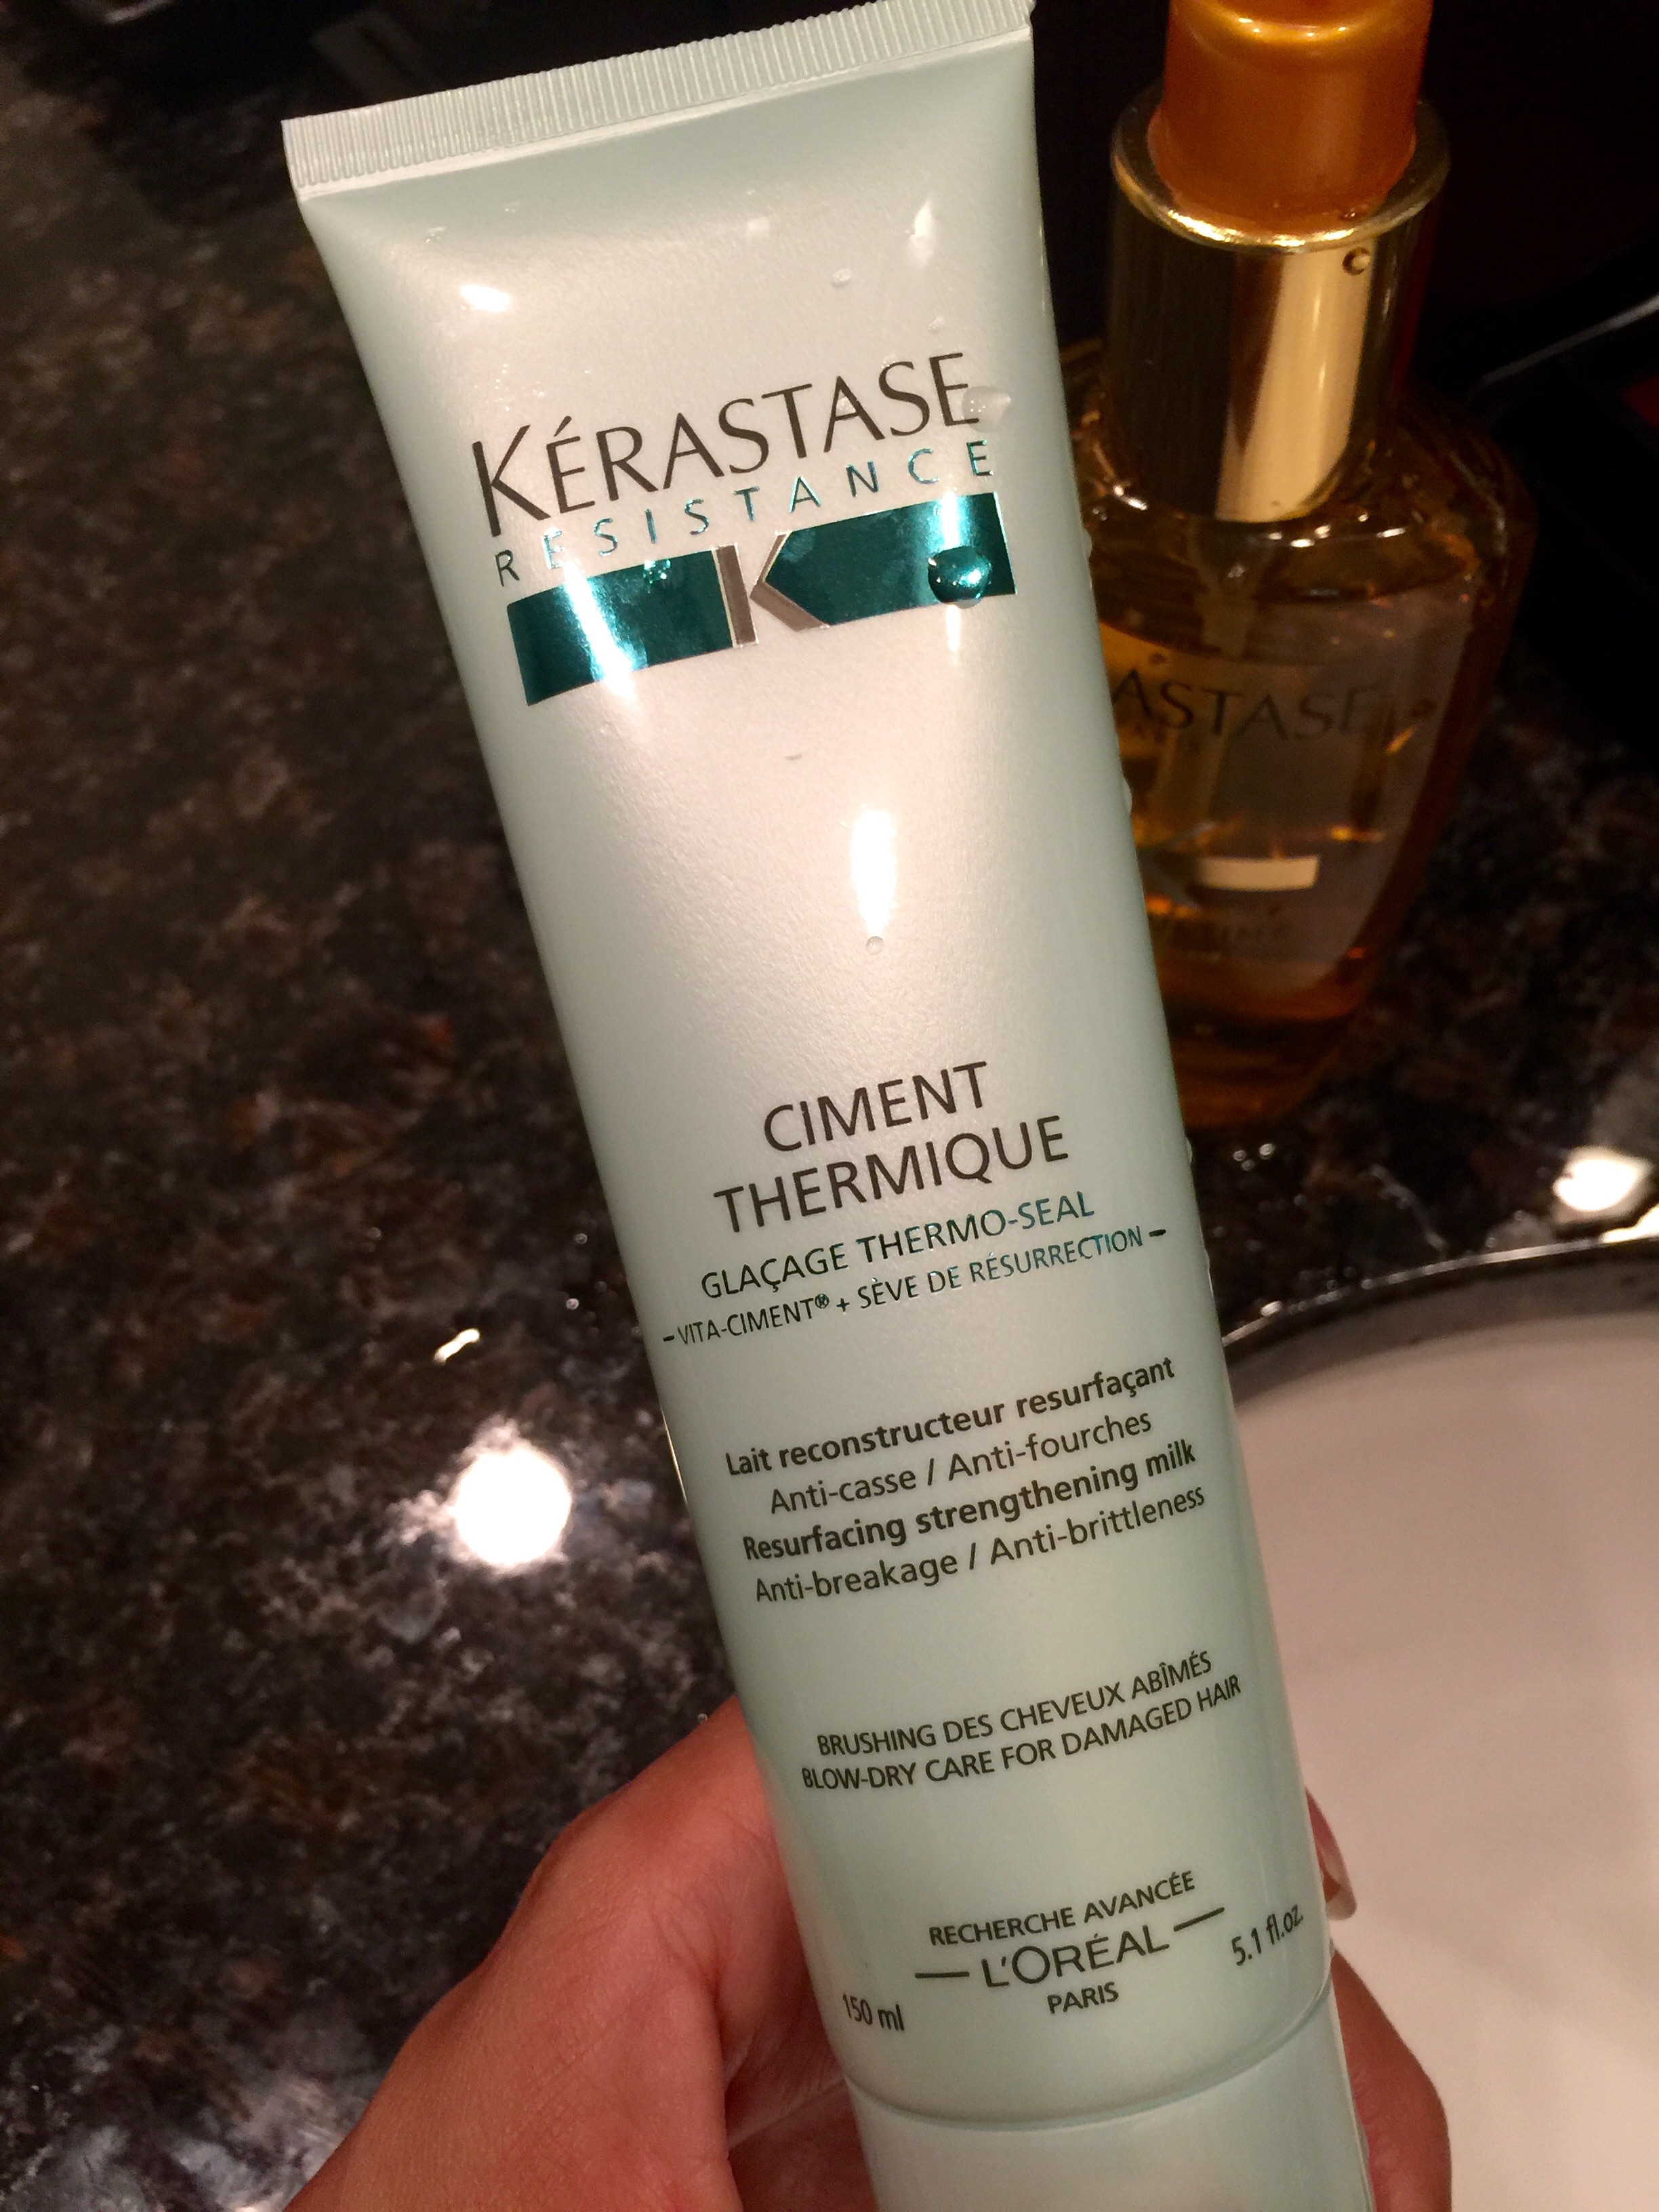 Kerastase   (Ciment Thermique)   is by far the best product line I've tried! Every morning I use hot tools on my hair so I make it a point to apply this the night before. I use about a quarter sized amount and lather it in to the ends of my hair.